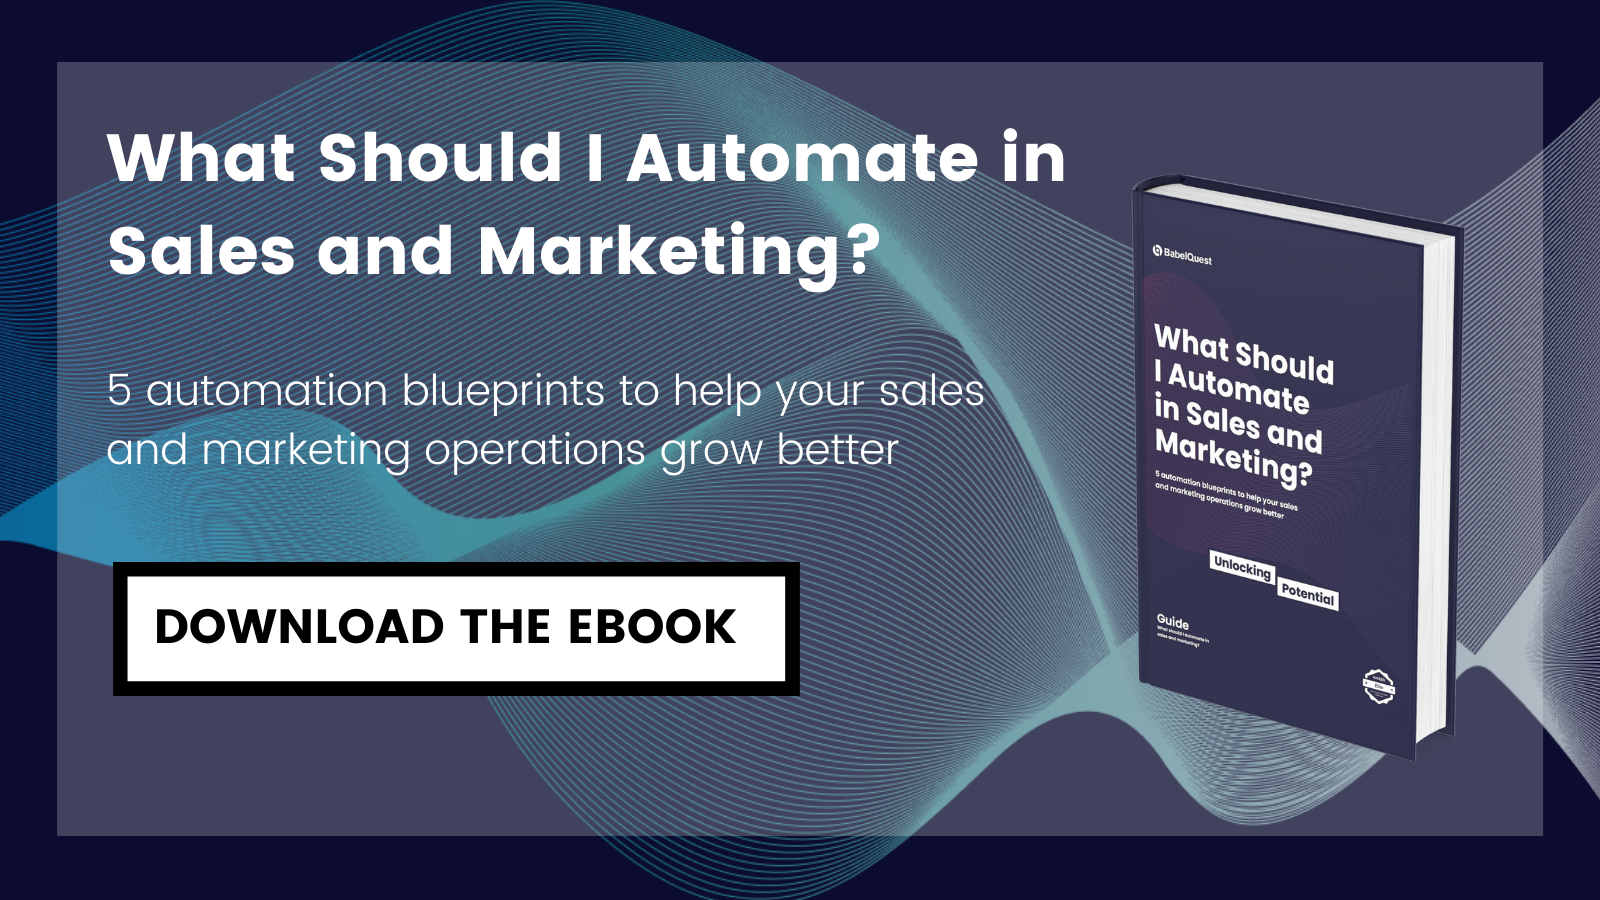 What should I automate in Sales and Marketing? Download the ebook now